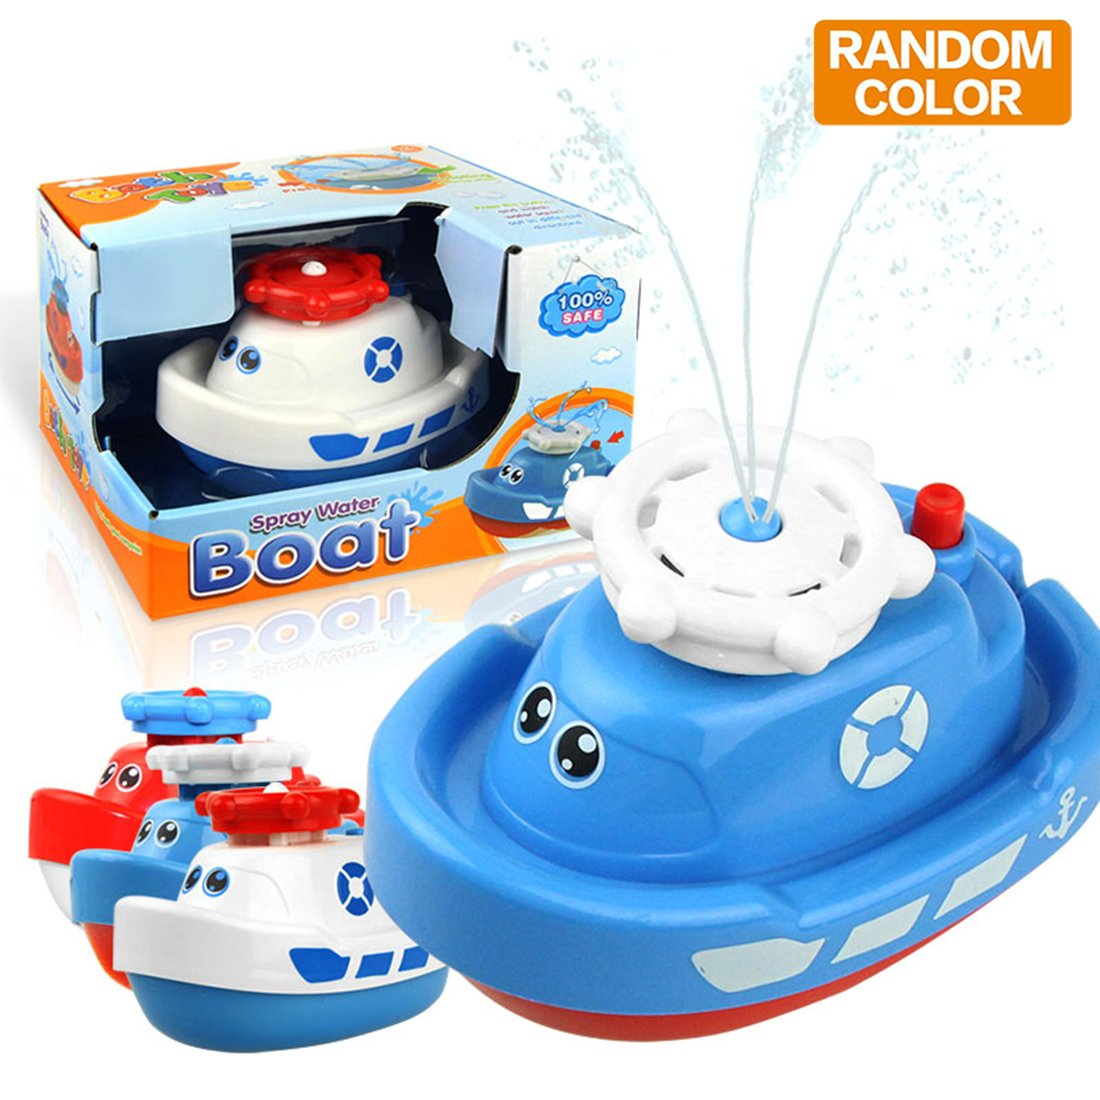 50%OFF Toys for Boys 3 Year Old Minus, Joyfun Bath Toys Floating ...